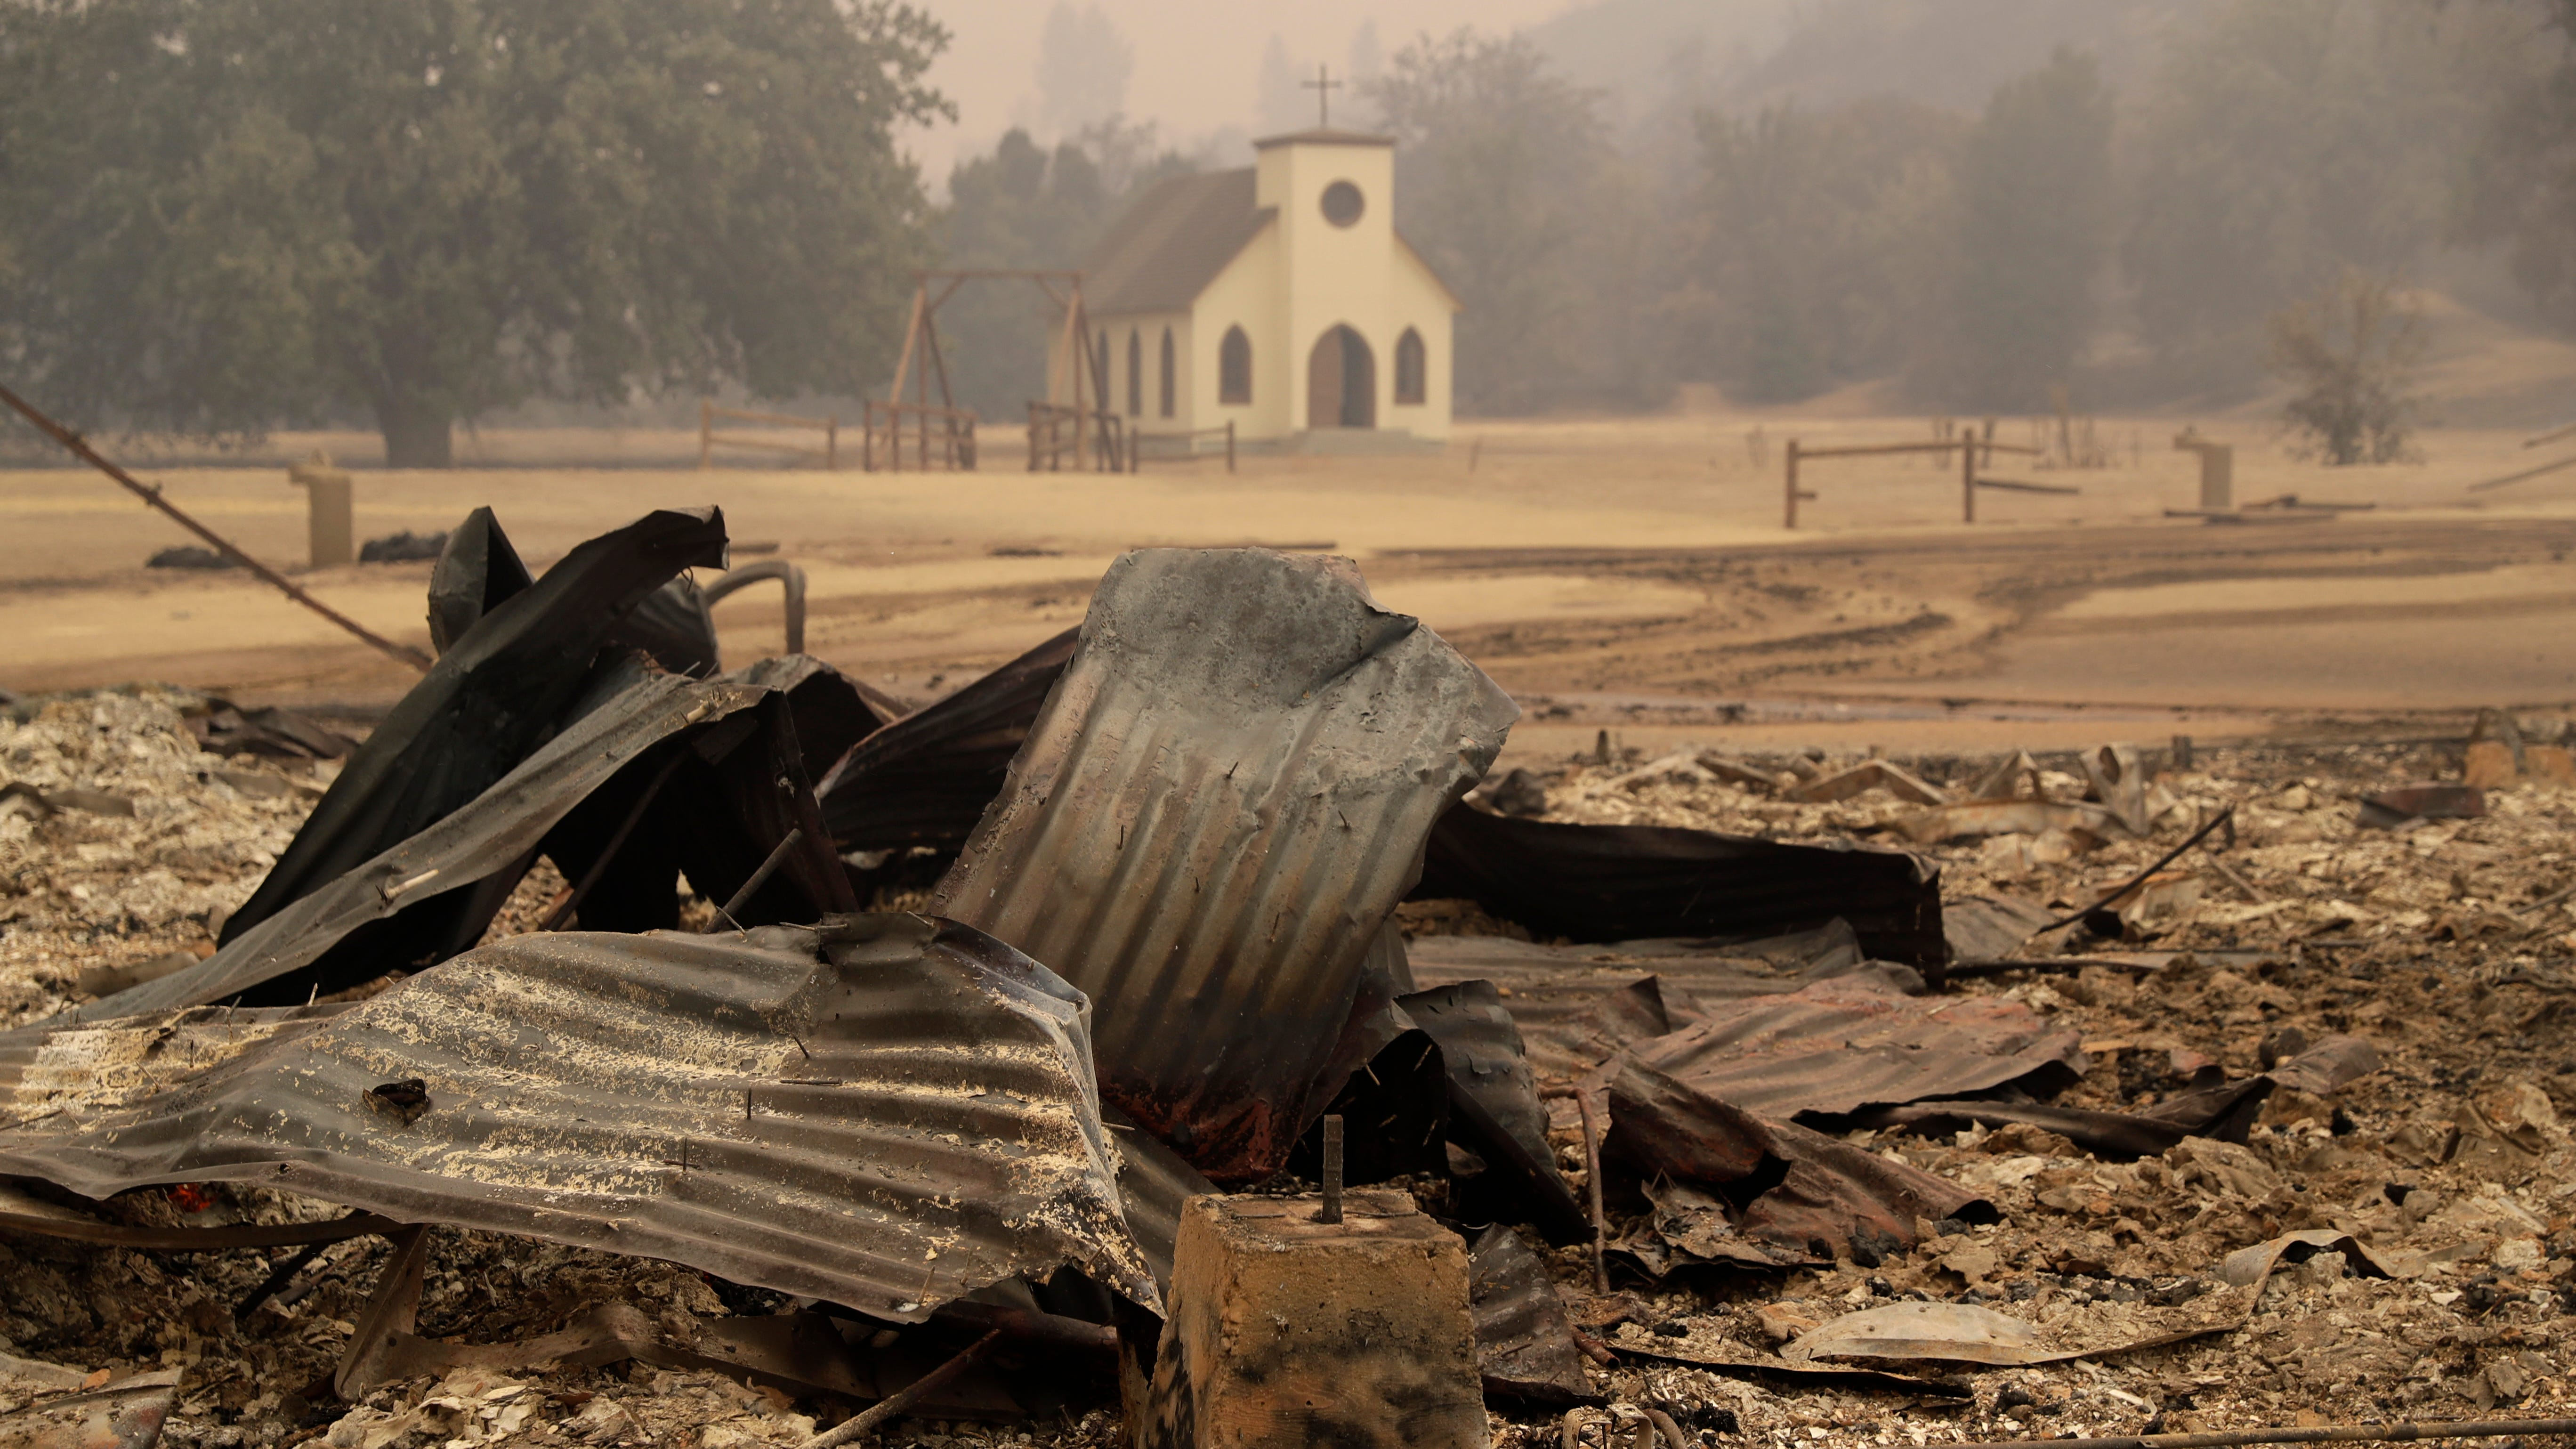 'Westworld' Western set burns down in Southern California's fast-moving Woolsey wildfire